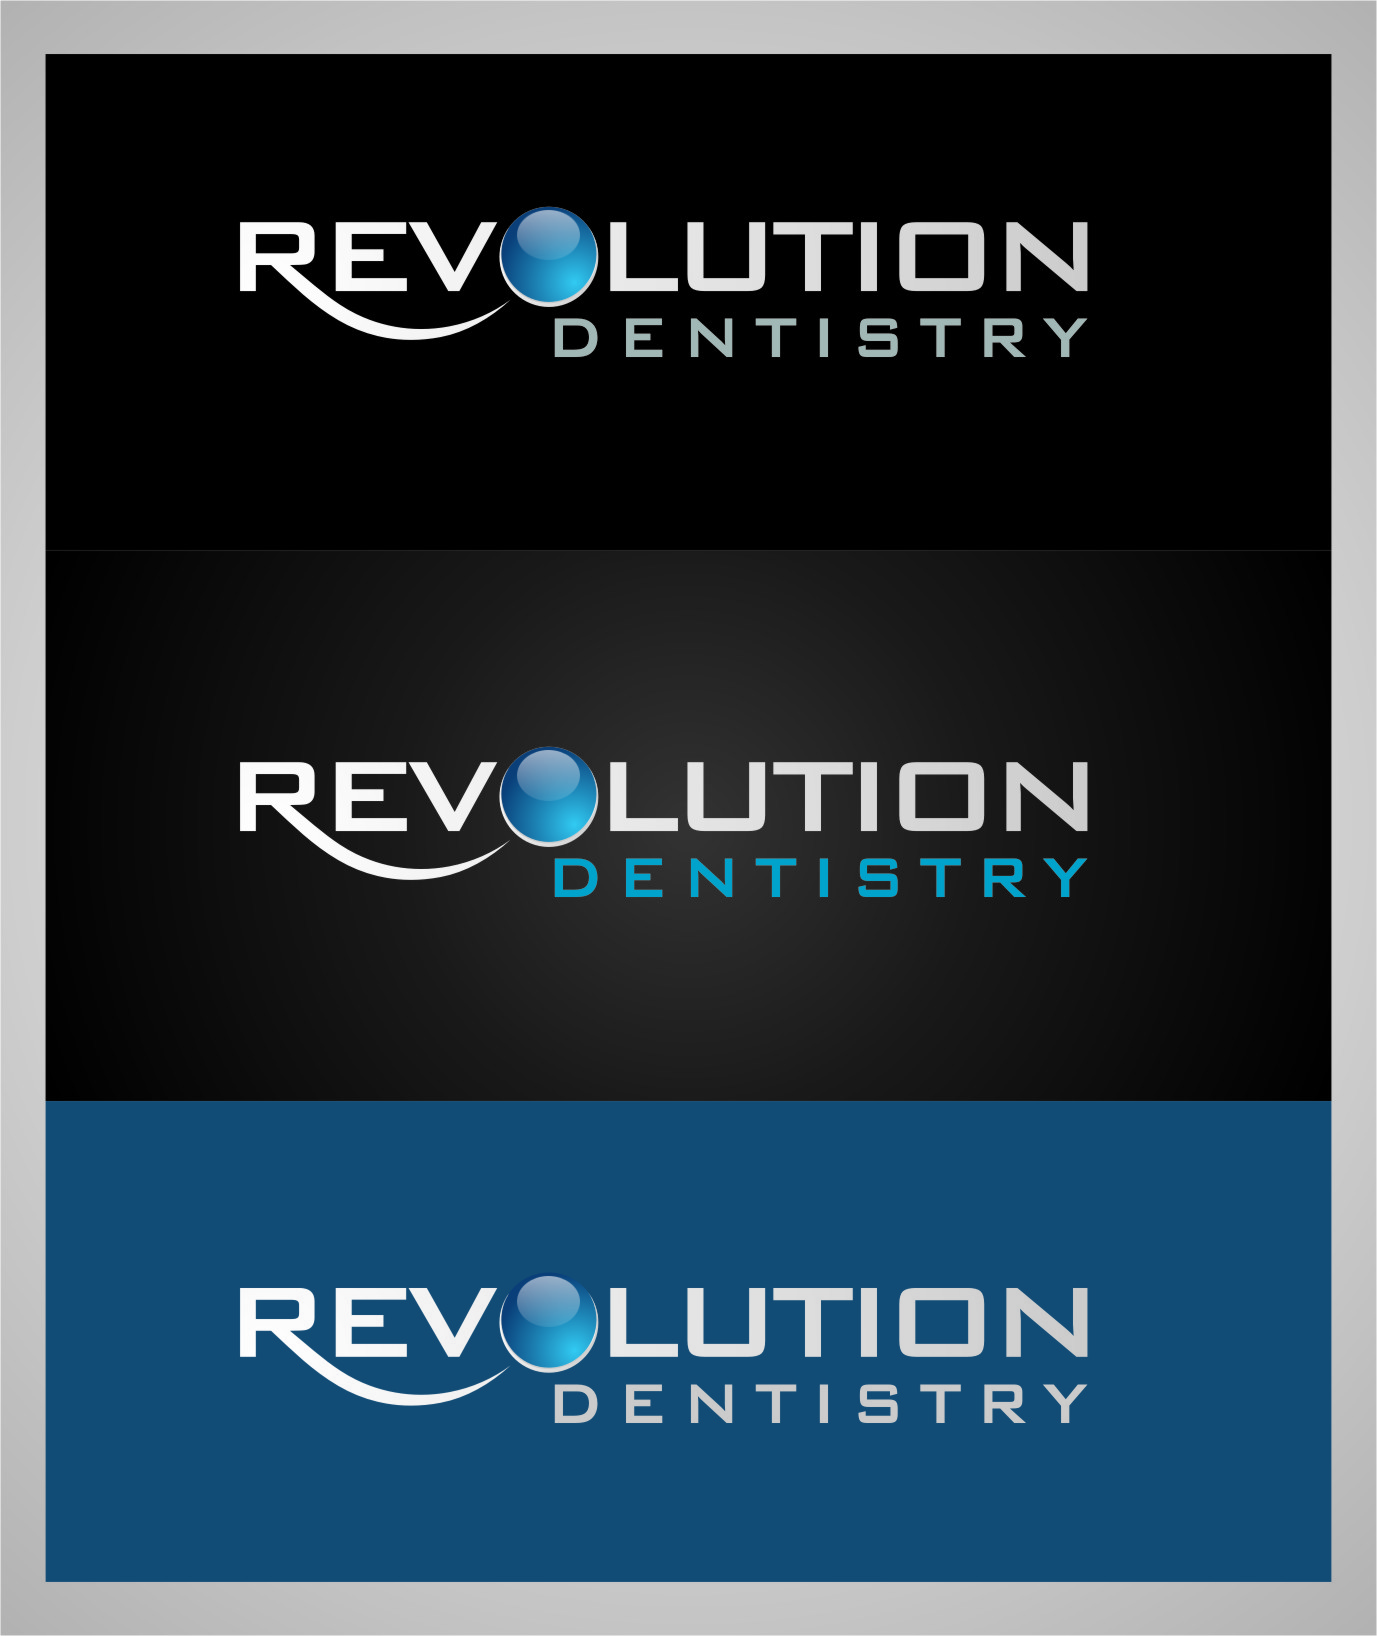 Logo Design by Ngepet_art - Entry No. 187 in the Logo Design Contest Artistic Logo Design for Revolution Dentistry.